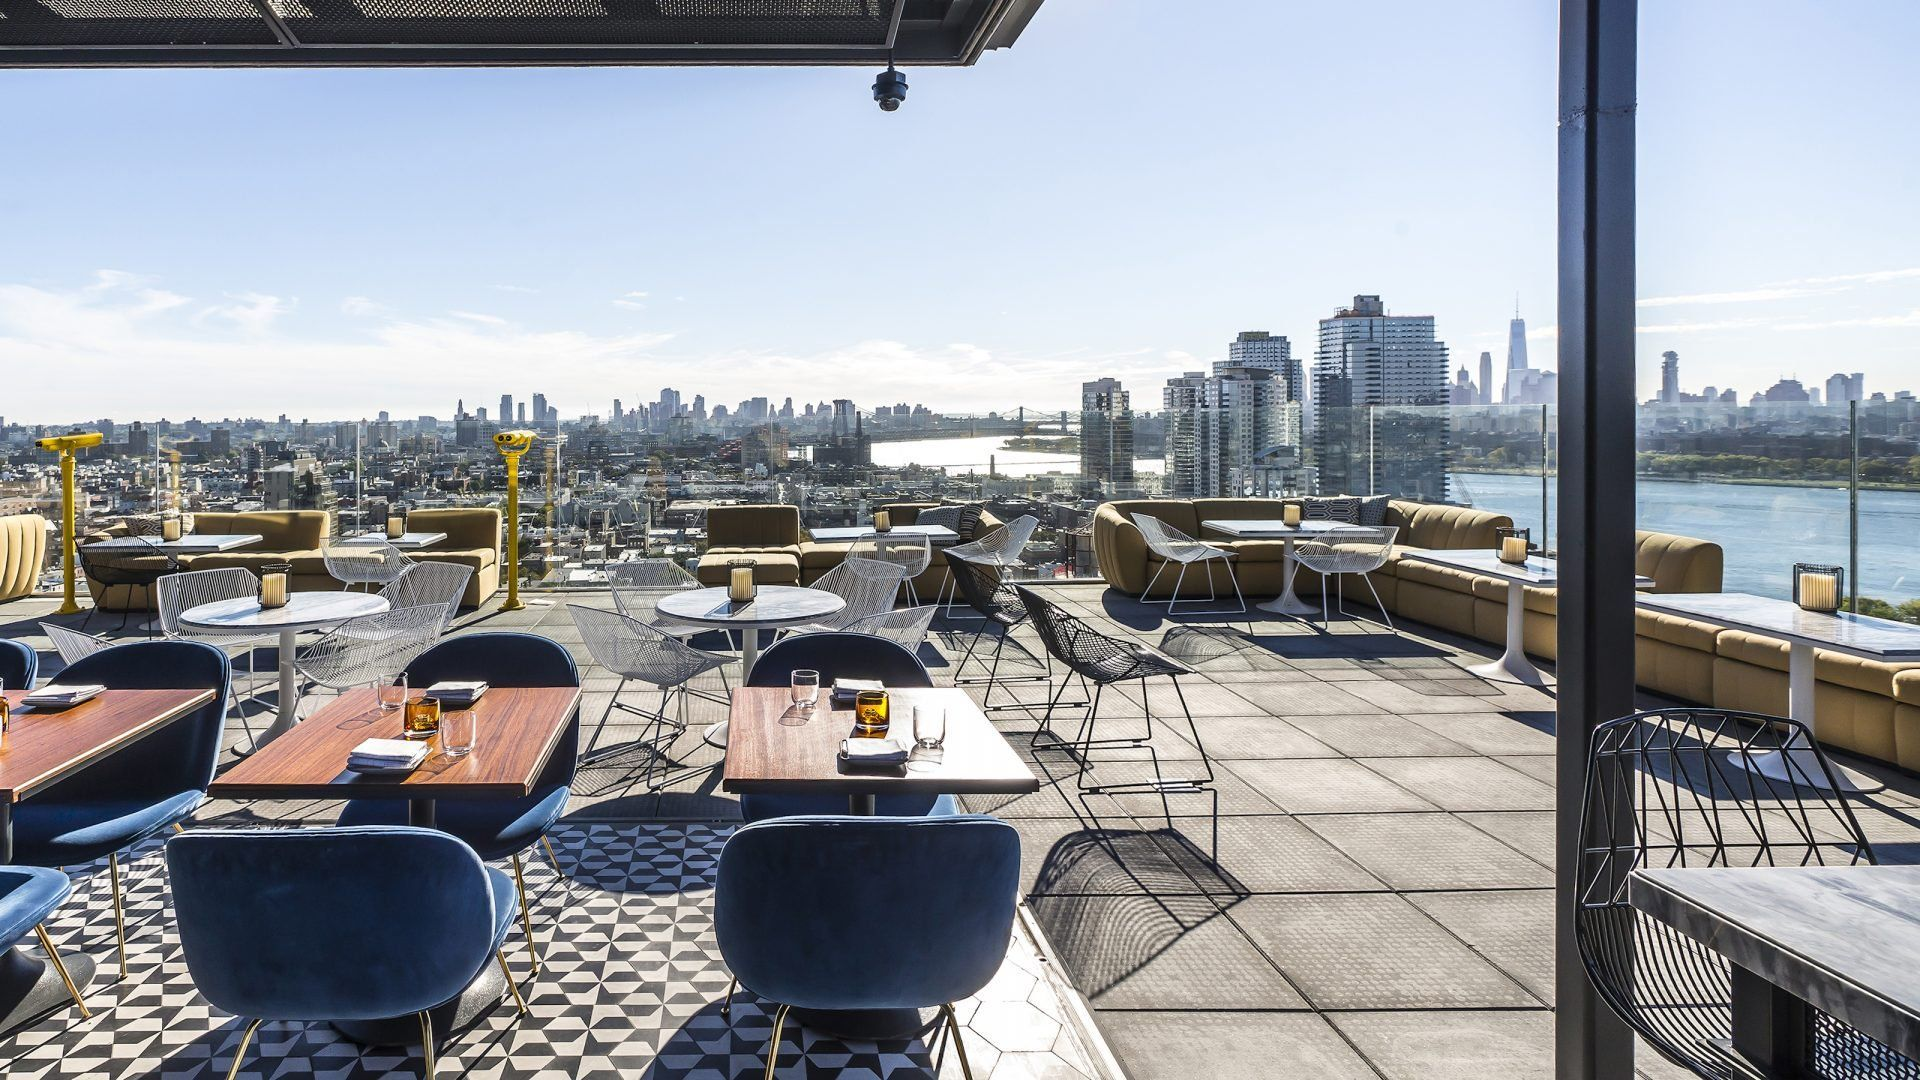 Co Op Prices In Nyc Just Hit An All Time High Find Out More About The Market And Where I Ve Been Spending M Rooftop Bars Nyc Nyc Rooftop Best Rooftop Bars Nyc